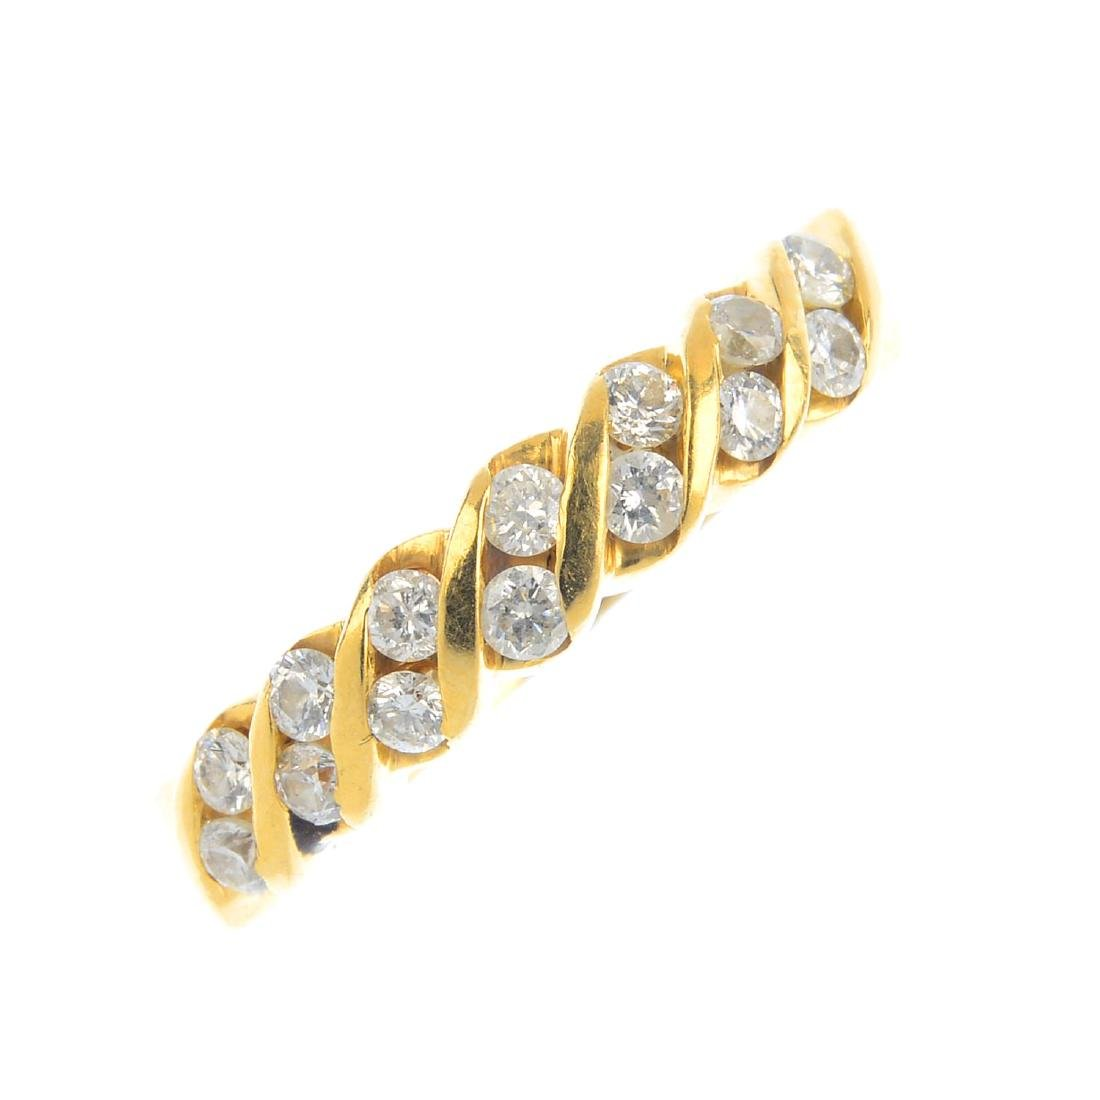 A diamond dress ring. Designed as a series of